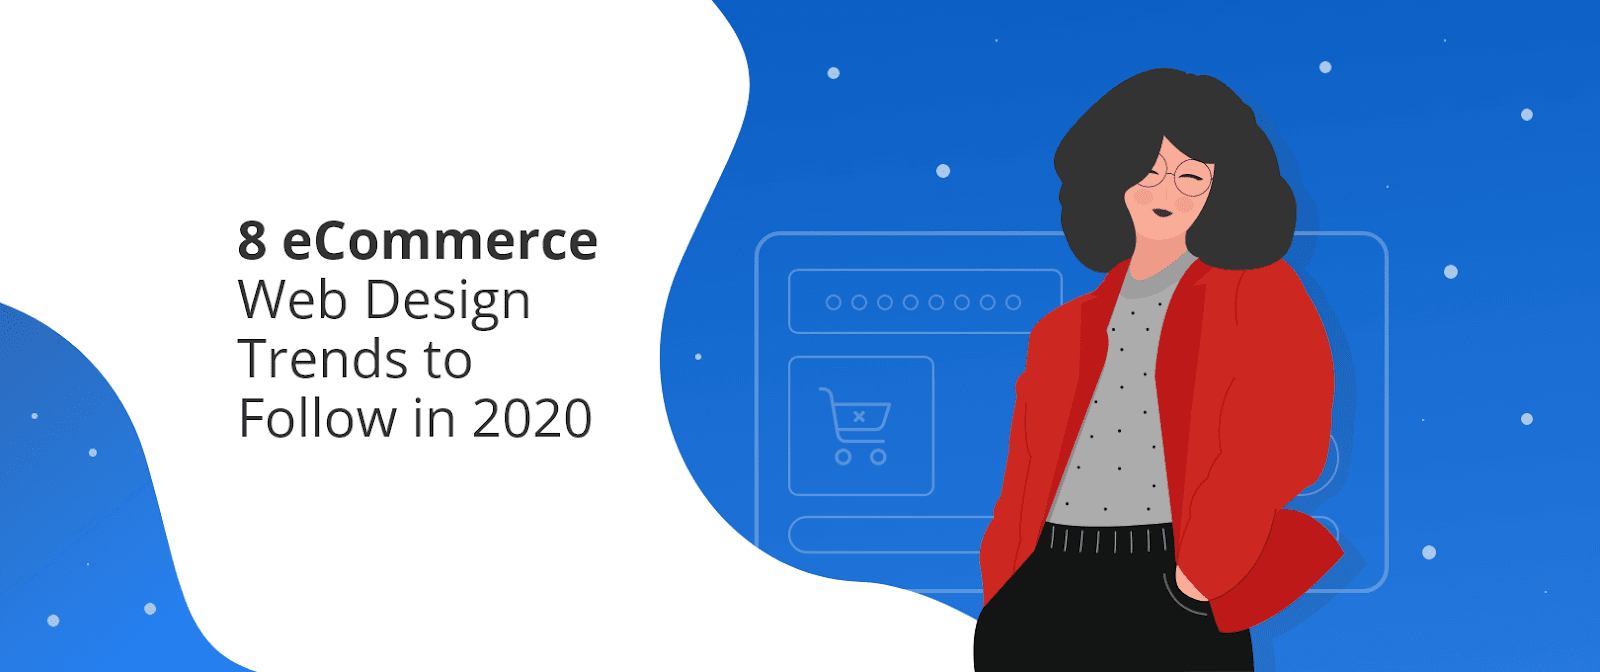 8 eCommerce Web Design Trends to Follow in 2020 DevriX